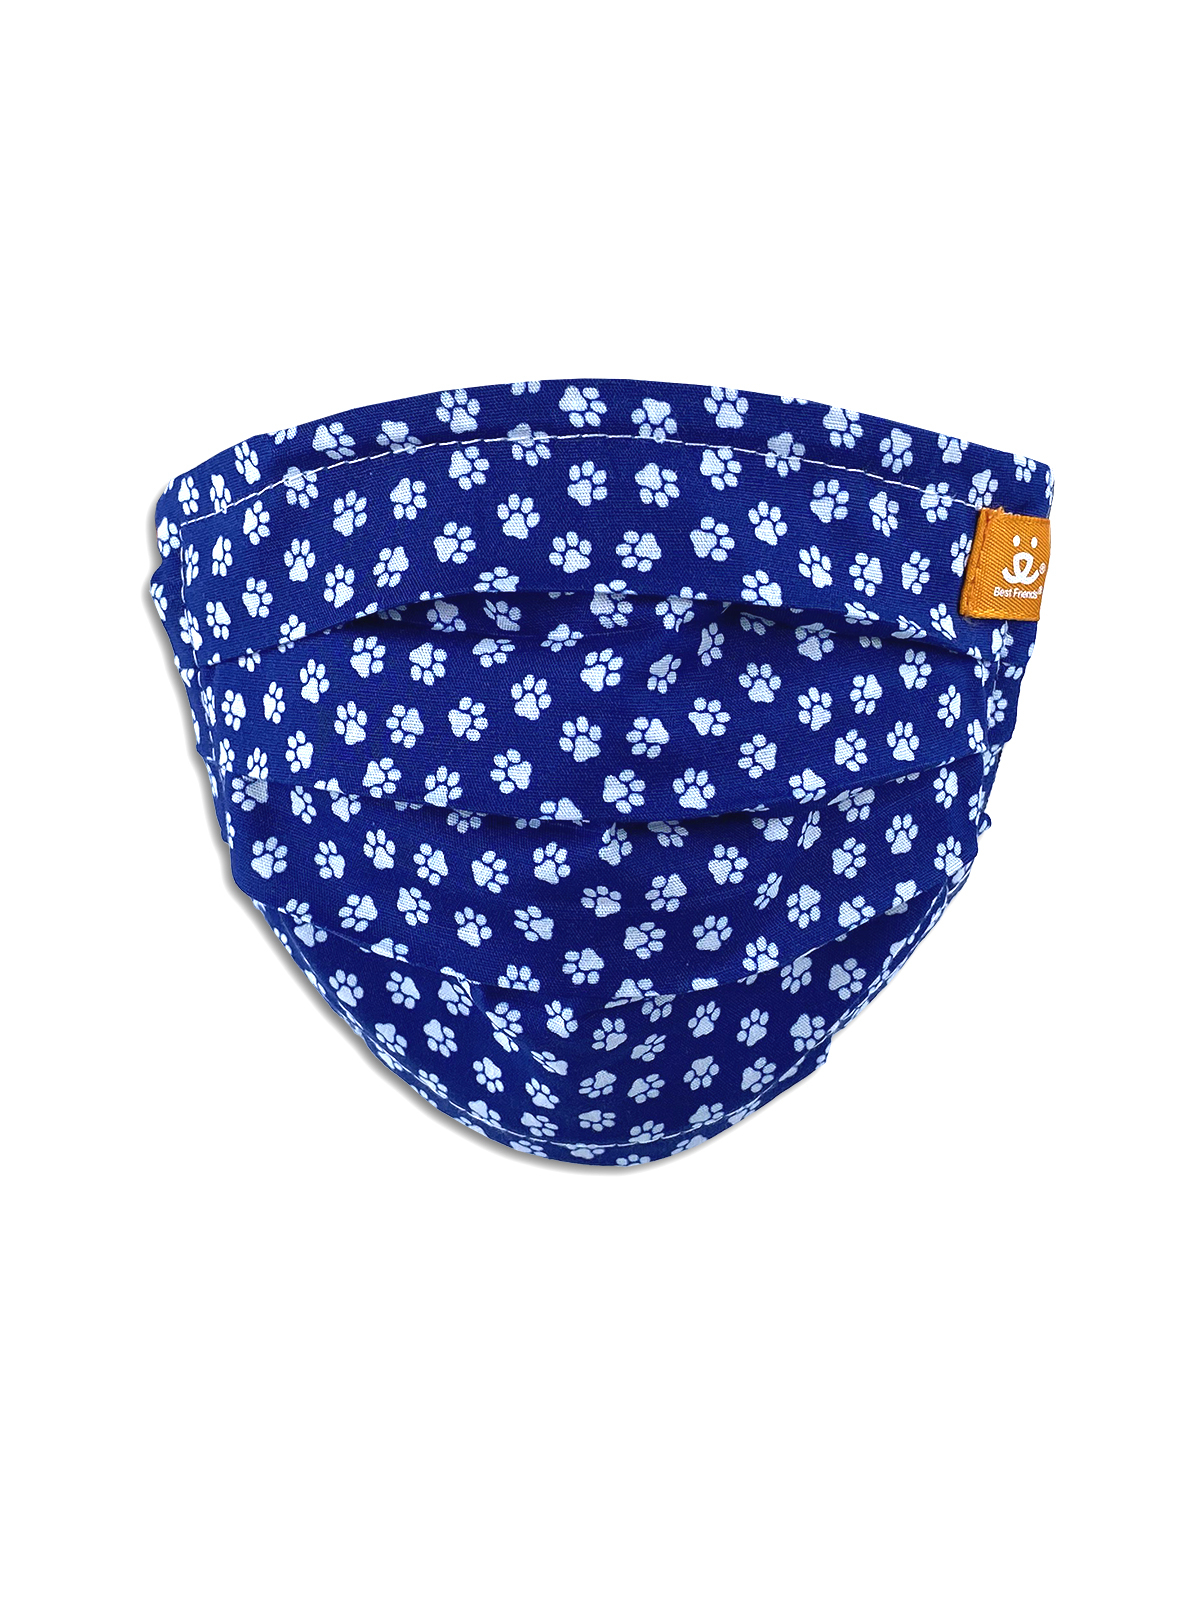 KIDS DOG SKETCH PLEATED REVERSIBLE MASK 3-PACK